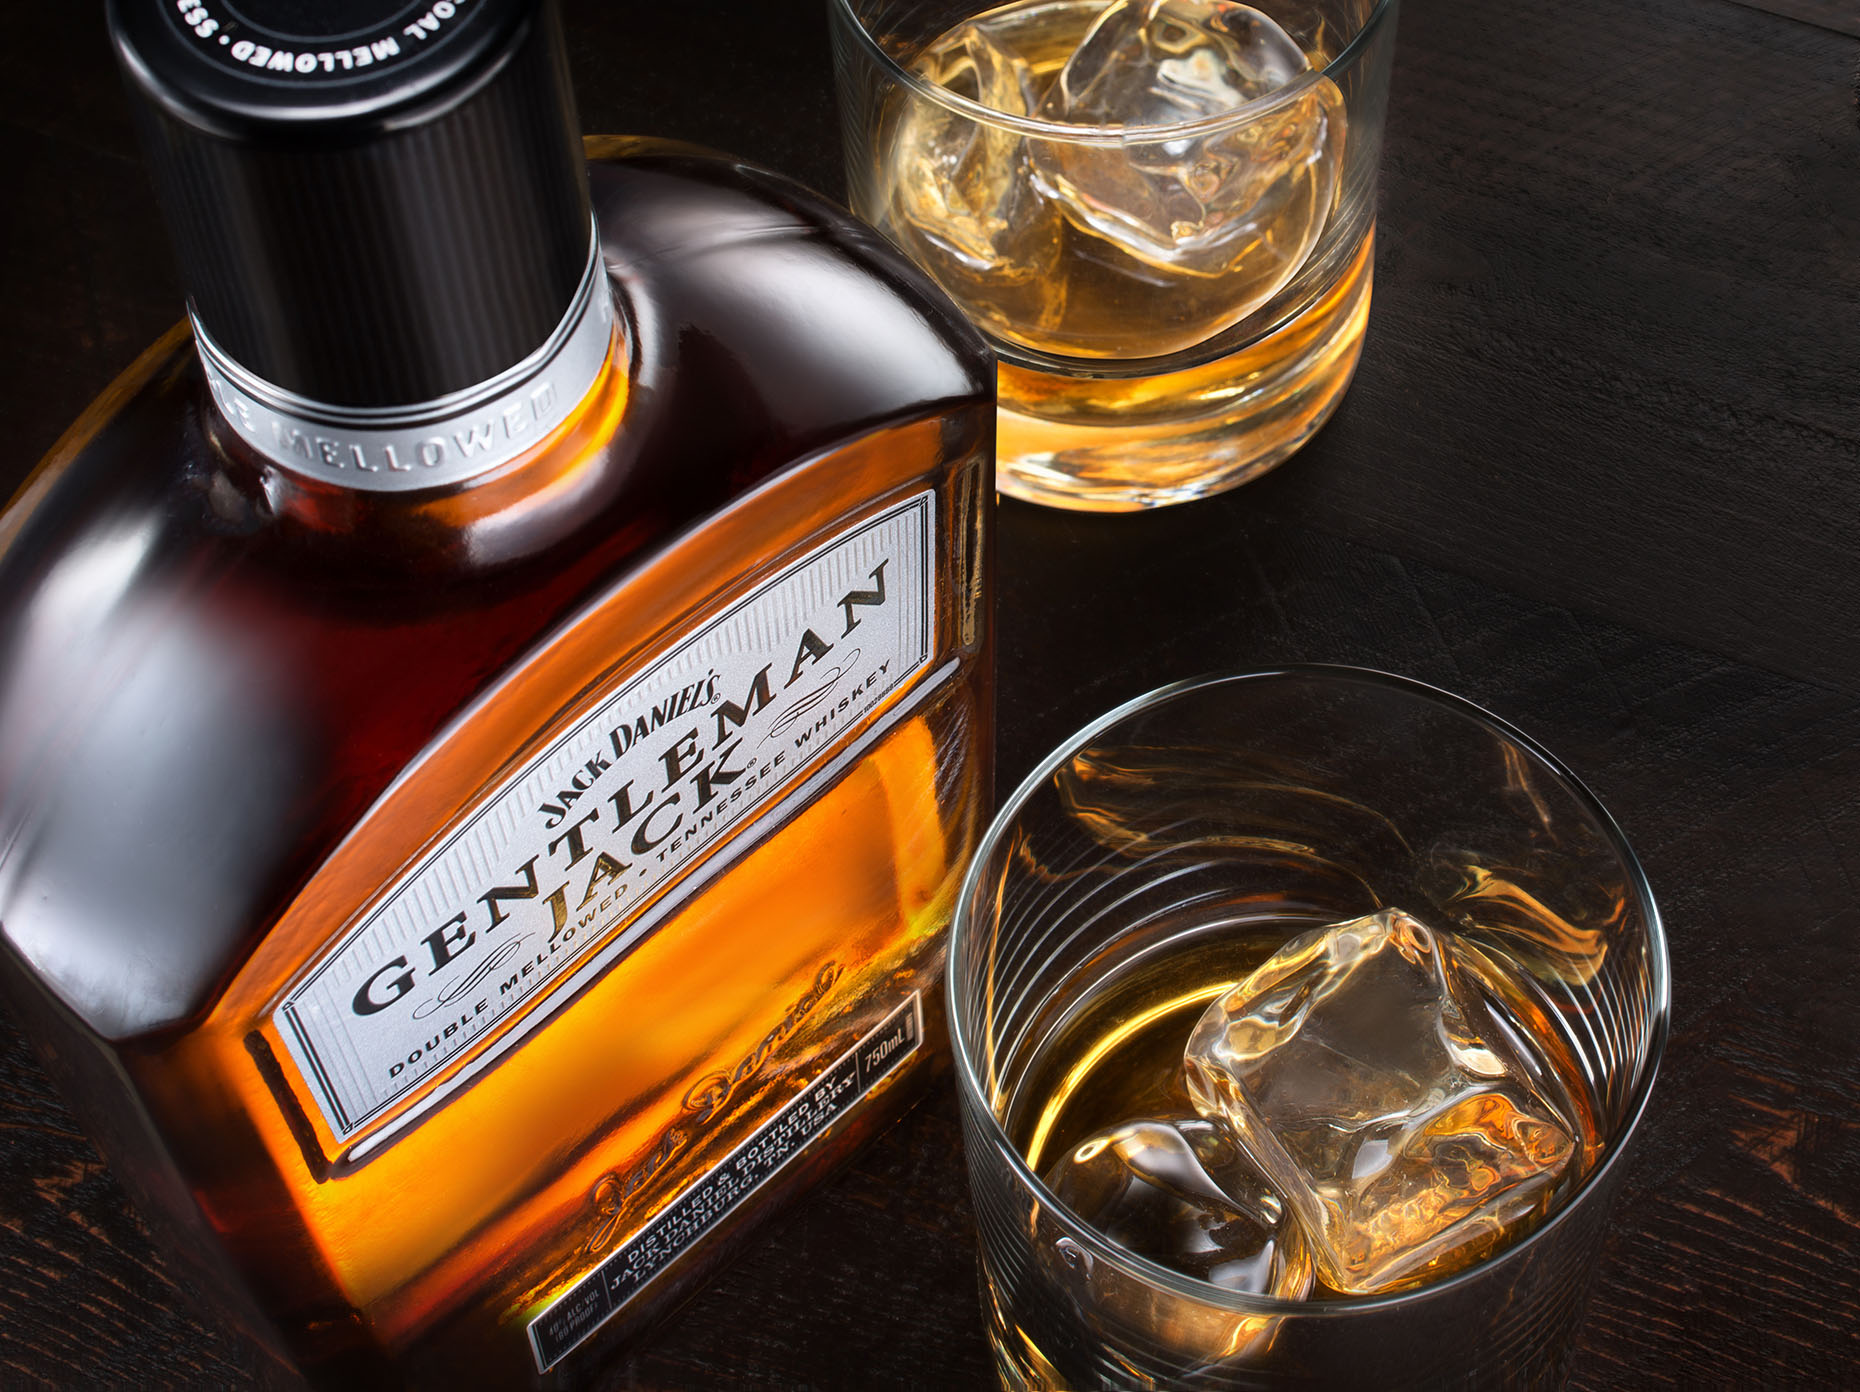 New-york-drink-photography-gentelma-jack-liquid-photography